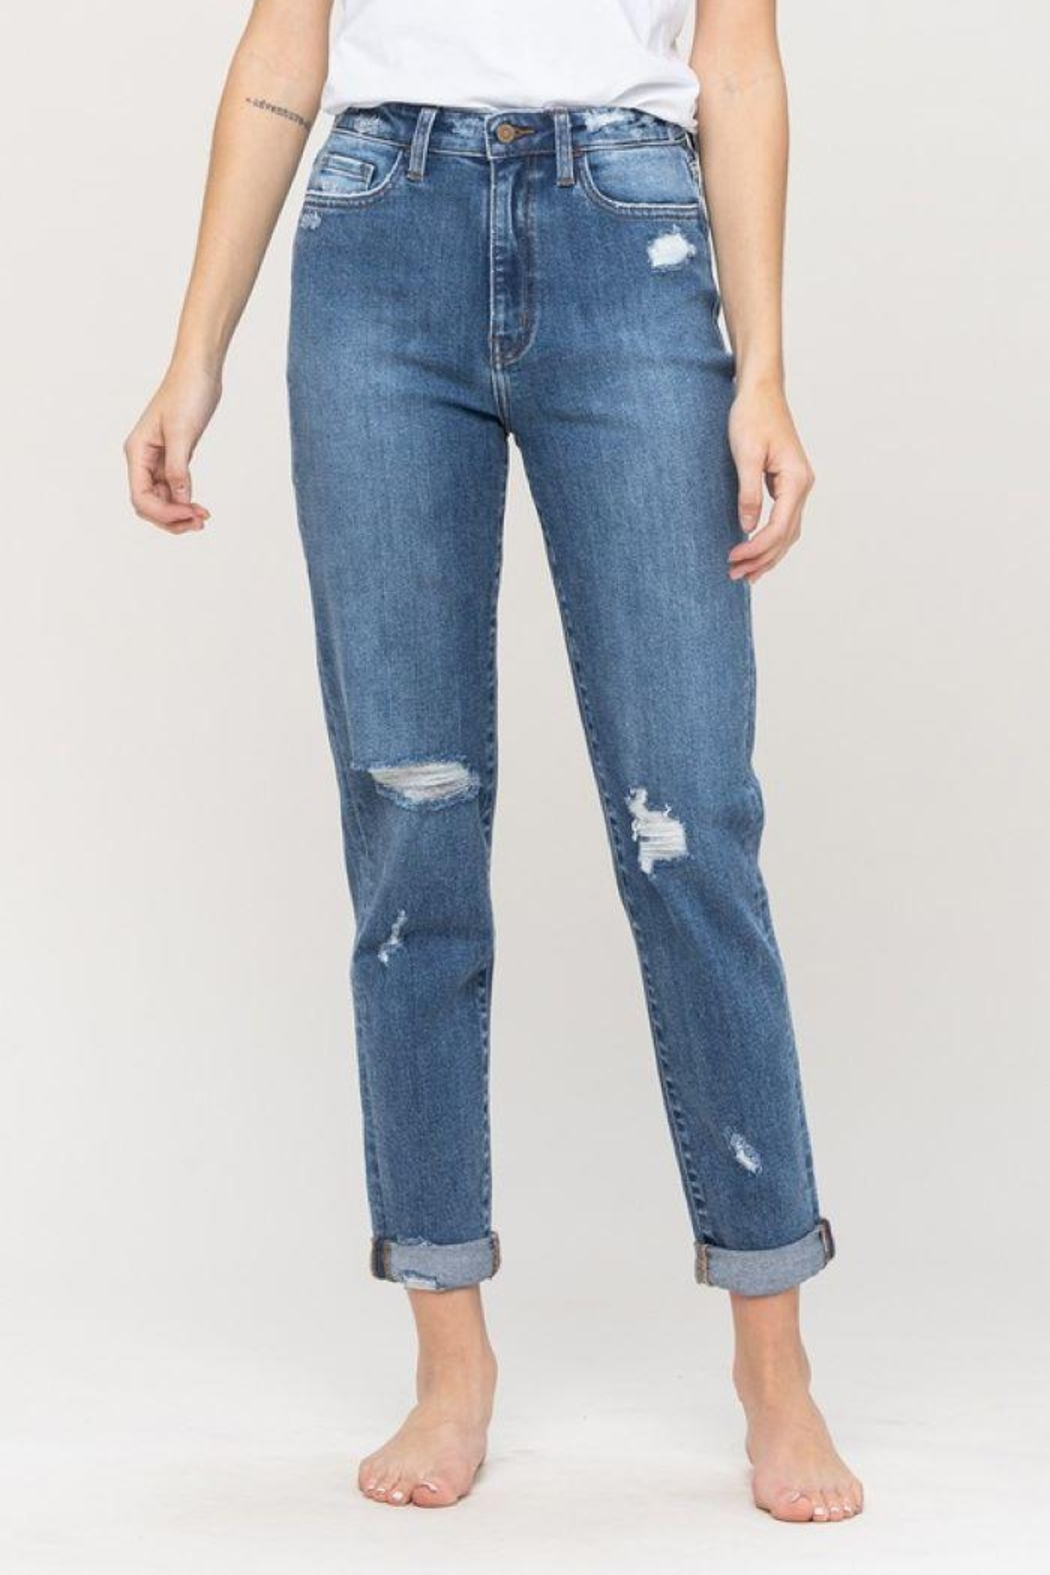 Flying Monkey Distressed Double Cuffed Stretch Mom Jean - Main Image